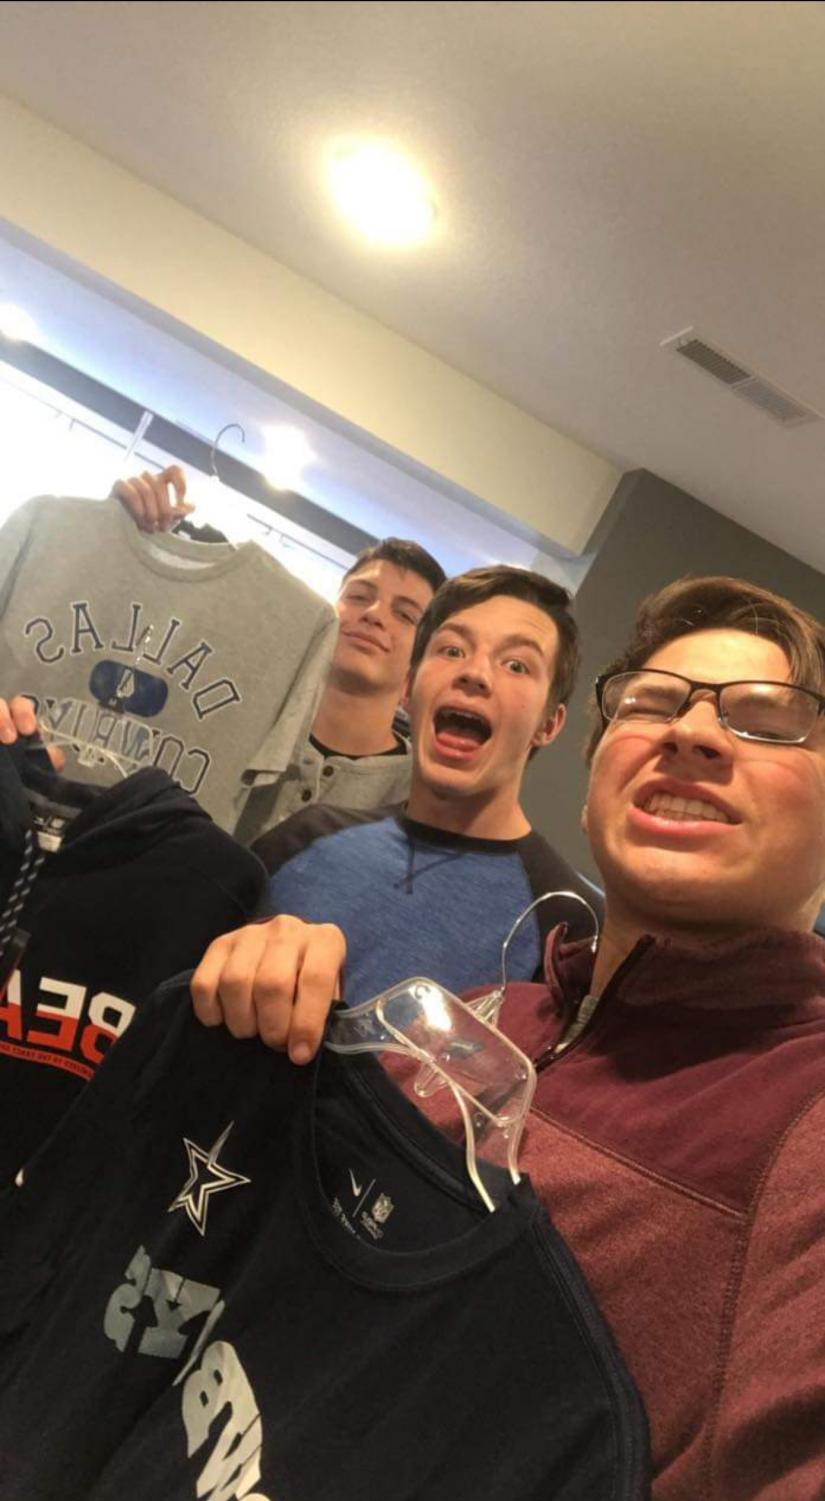 Tyler Schilz, Korey Damery and Cristian Scott take their attendance selfie. Every time they arrived at a new business, they had to take a picture to let their teacher know where they were. Each group posted their photo to a shared Facebook group to stay connected.